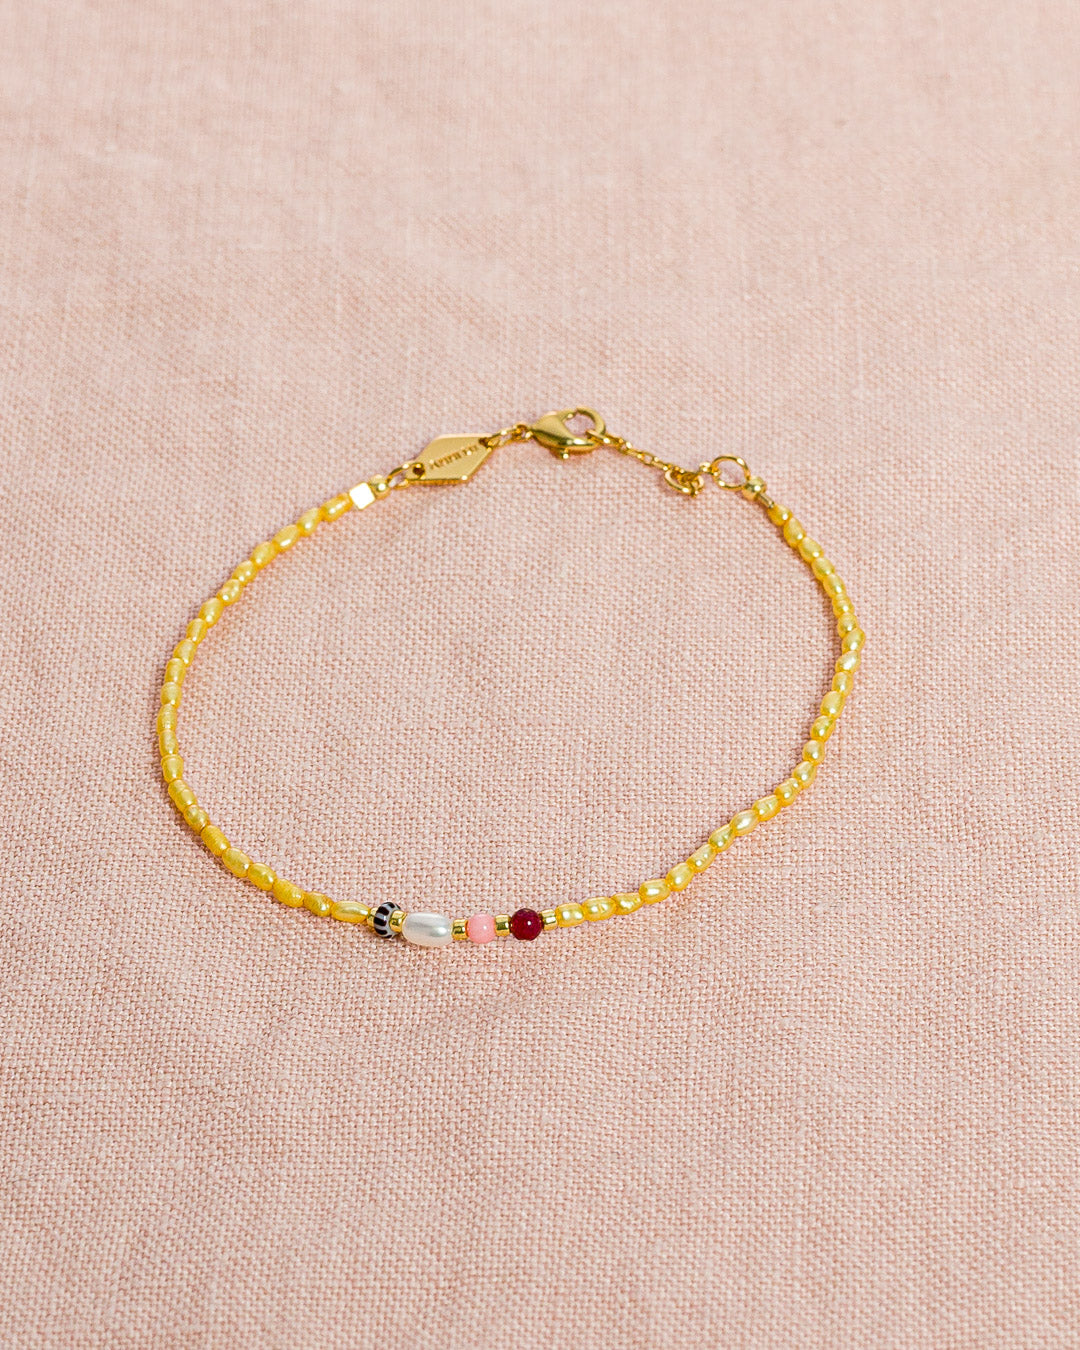 Anni Lu // Armband Rice & Shine Yellow Cream